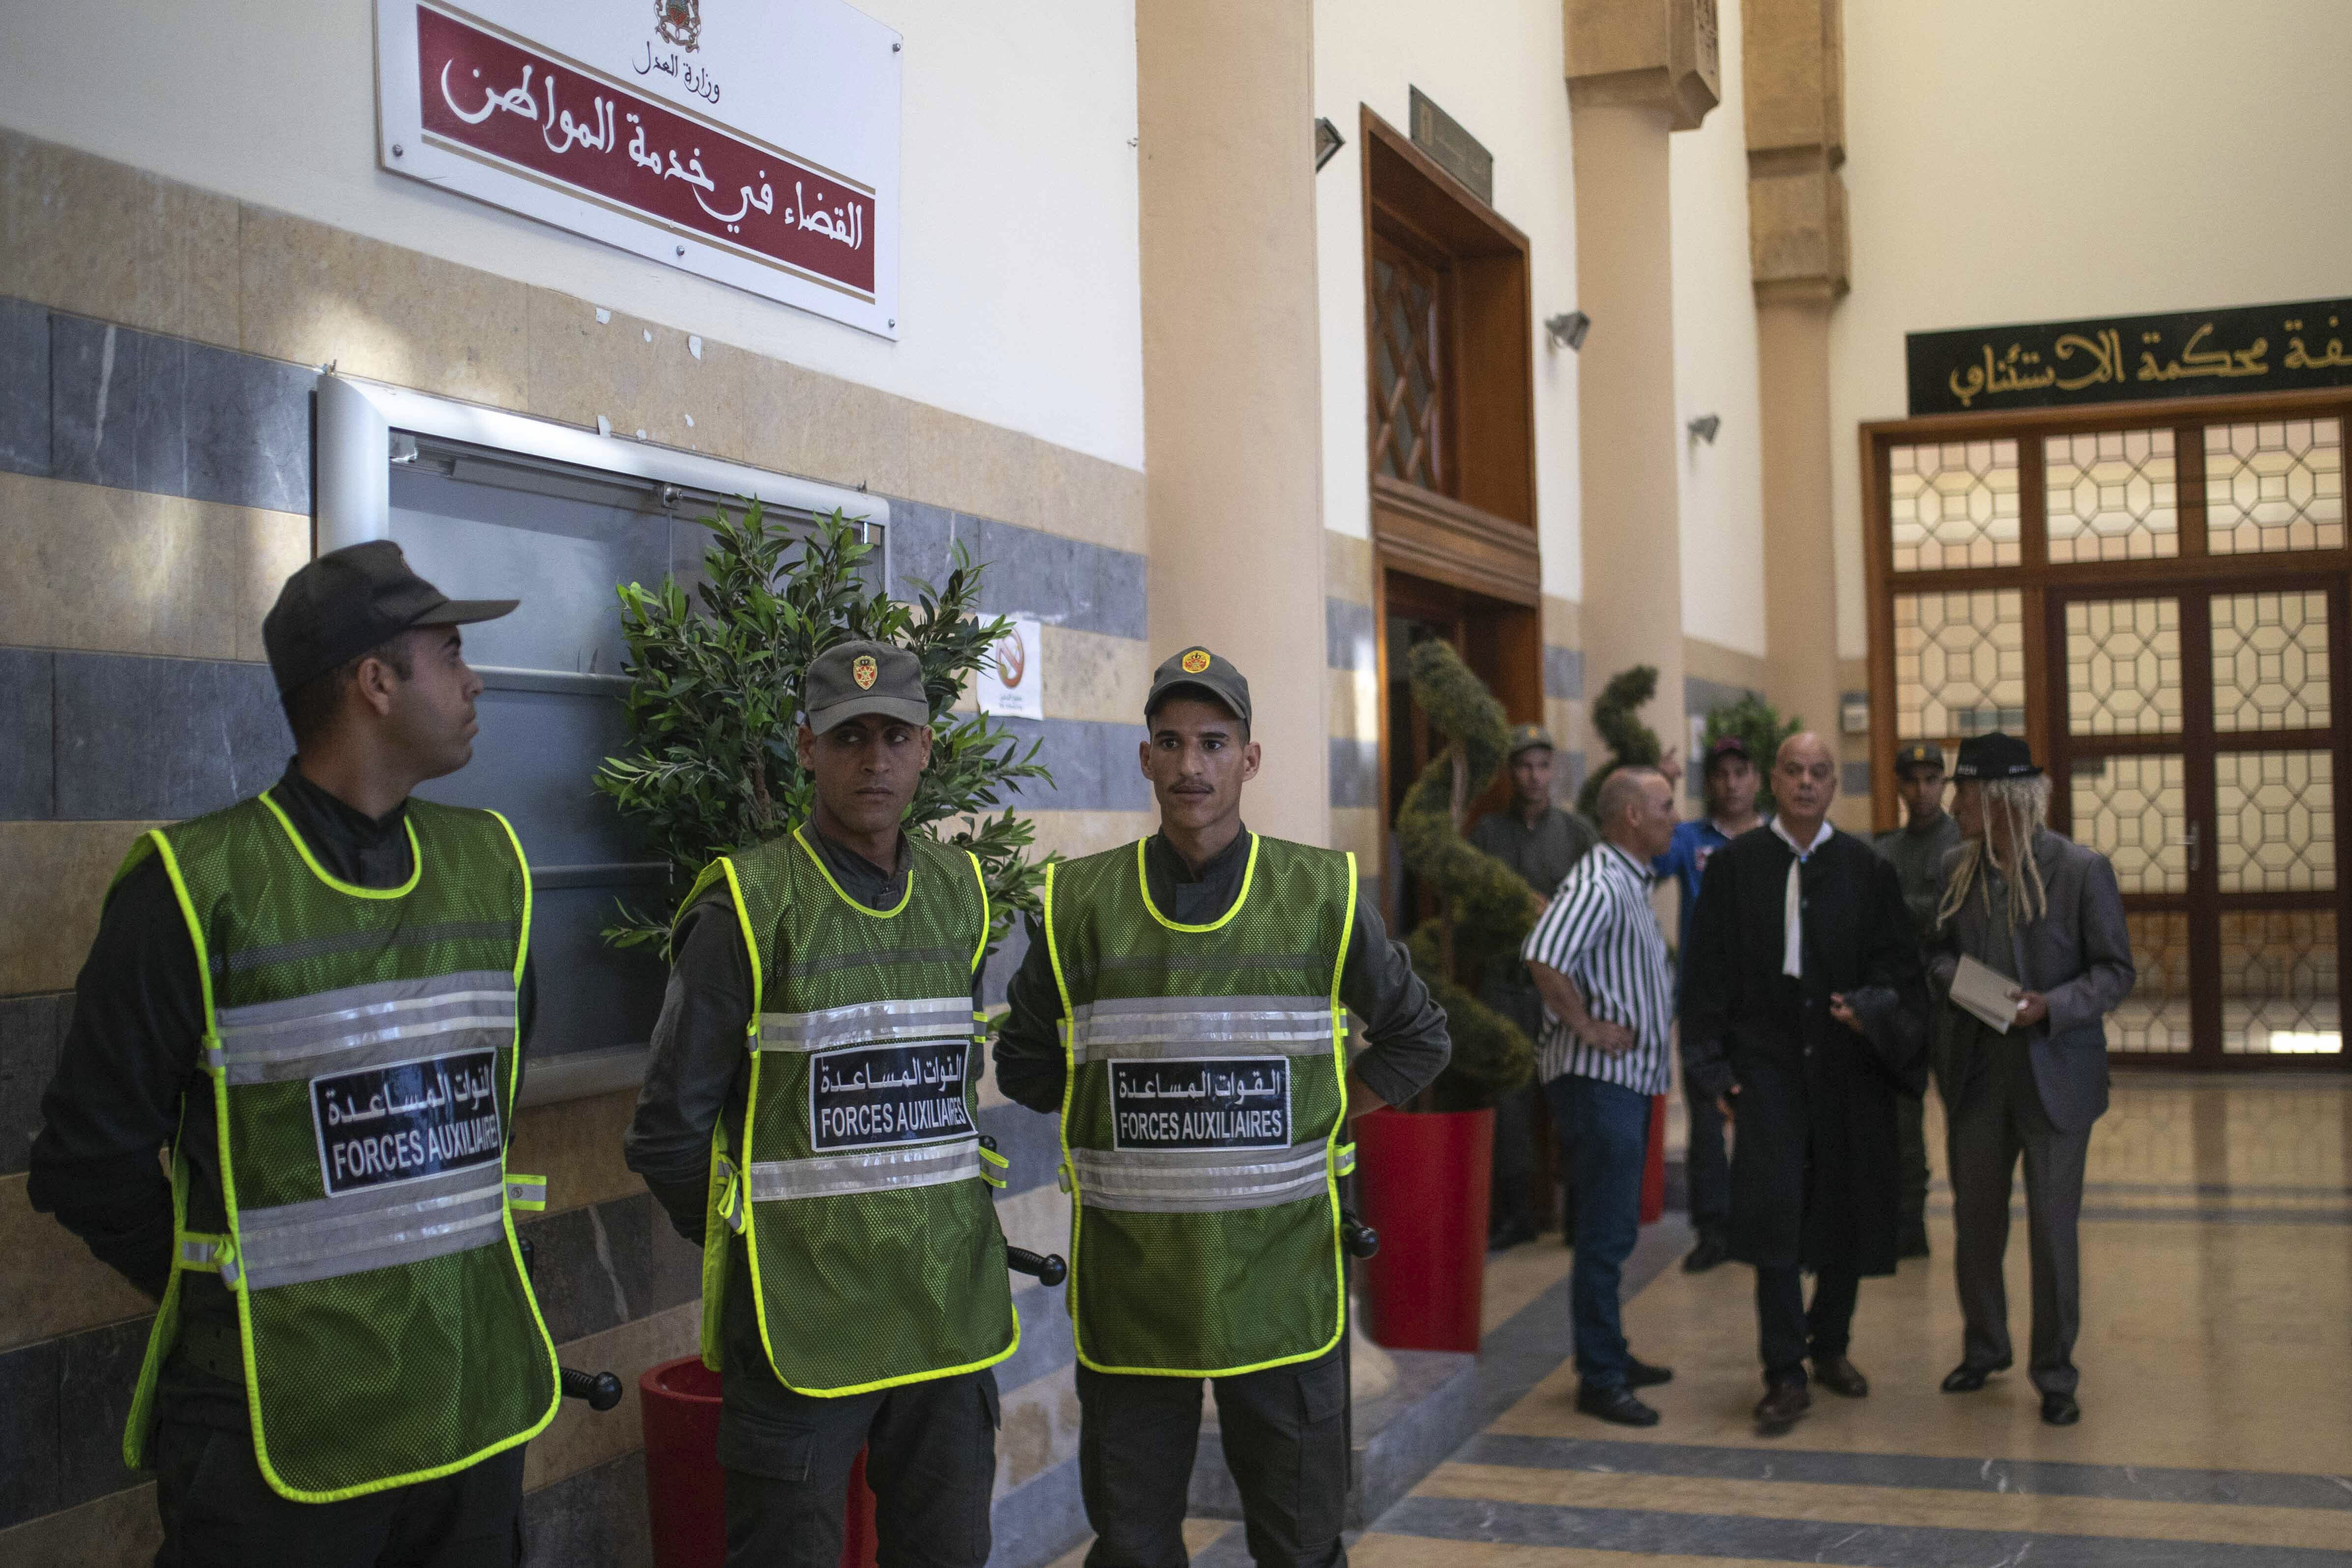 Security forces stand guard outside a court room before the start of a final trial session for suspects charged in connection with killing of two Scandinavian tourists in Morocco's Atlas Mountains, in Sale, near Rabat, Morocco, Thursday, July 18, 2019. The three main defendants in the brutal slaying of two female Scandinavian hikers have asked for forgiveness from Allah ahead of a verdict. (AP Photo/Mosa'ab Elshamy)